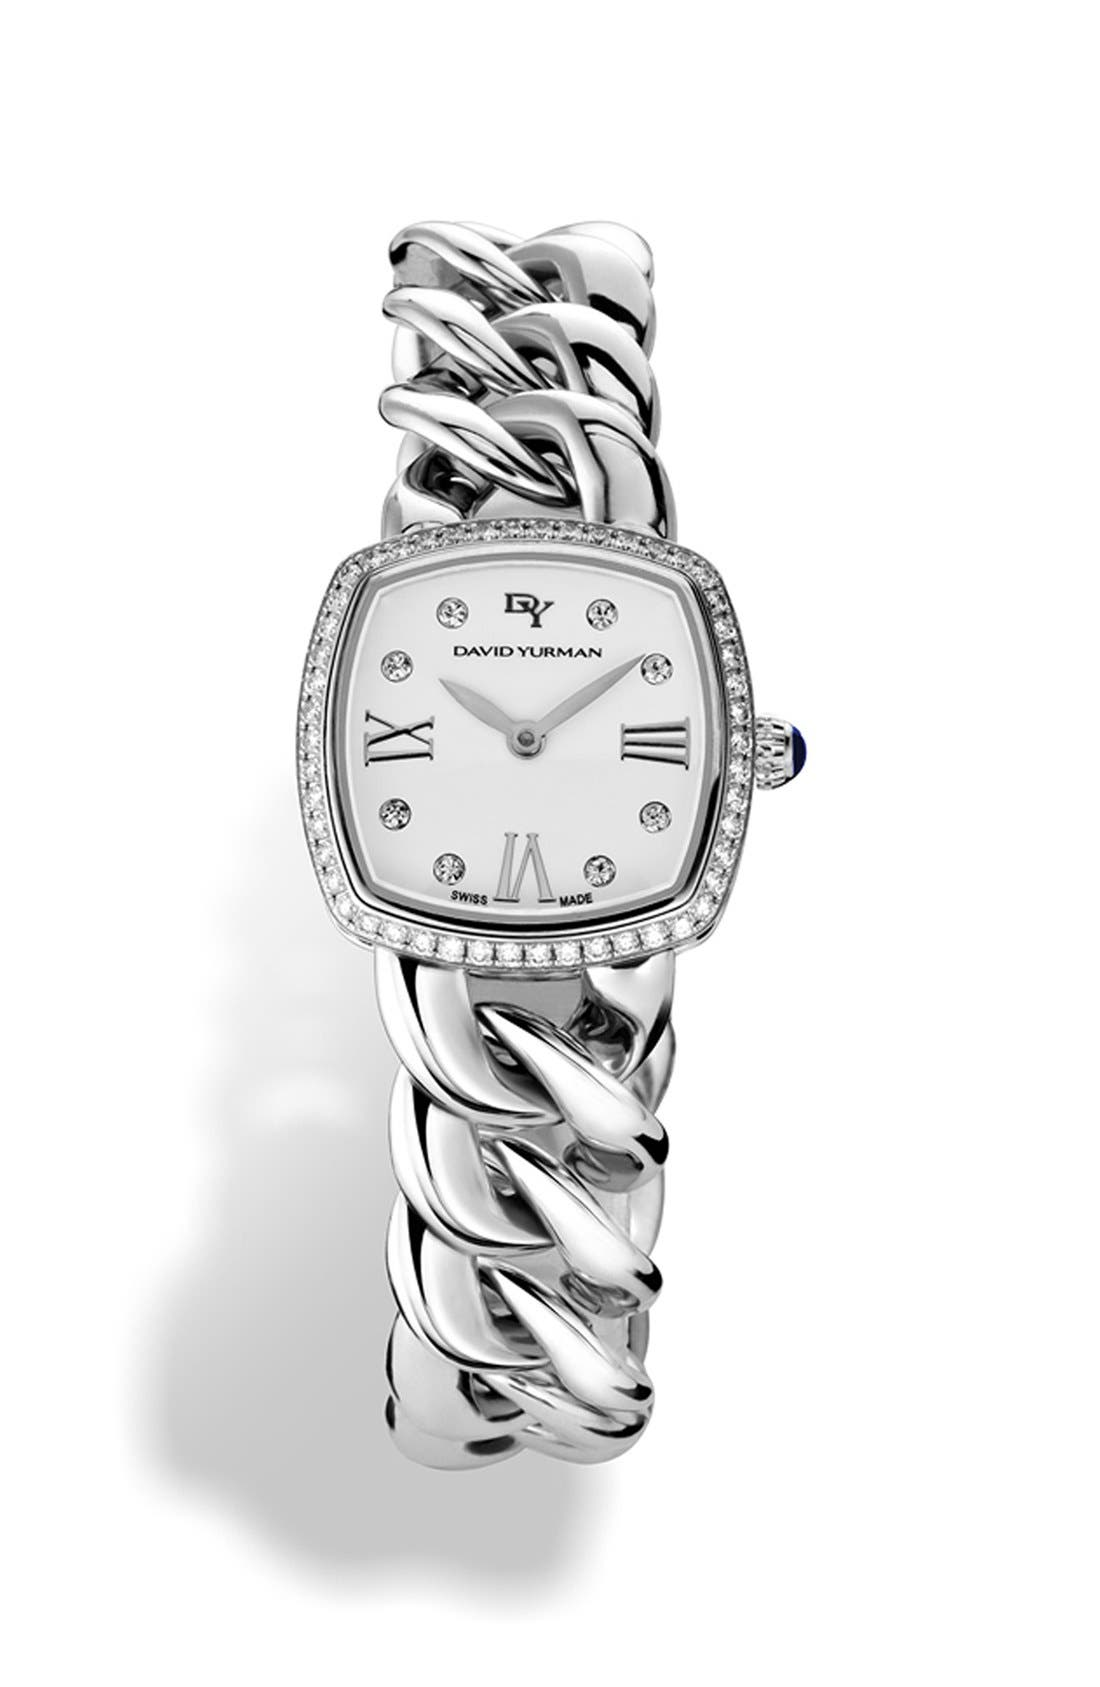 Main Image - David Yurman 'Albion' 23mm Stainless Steel Quartz Watch with Diamonds